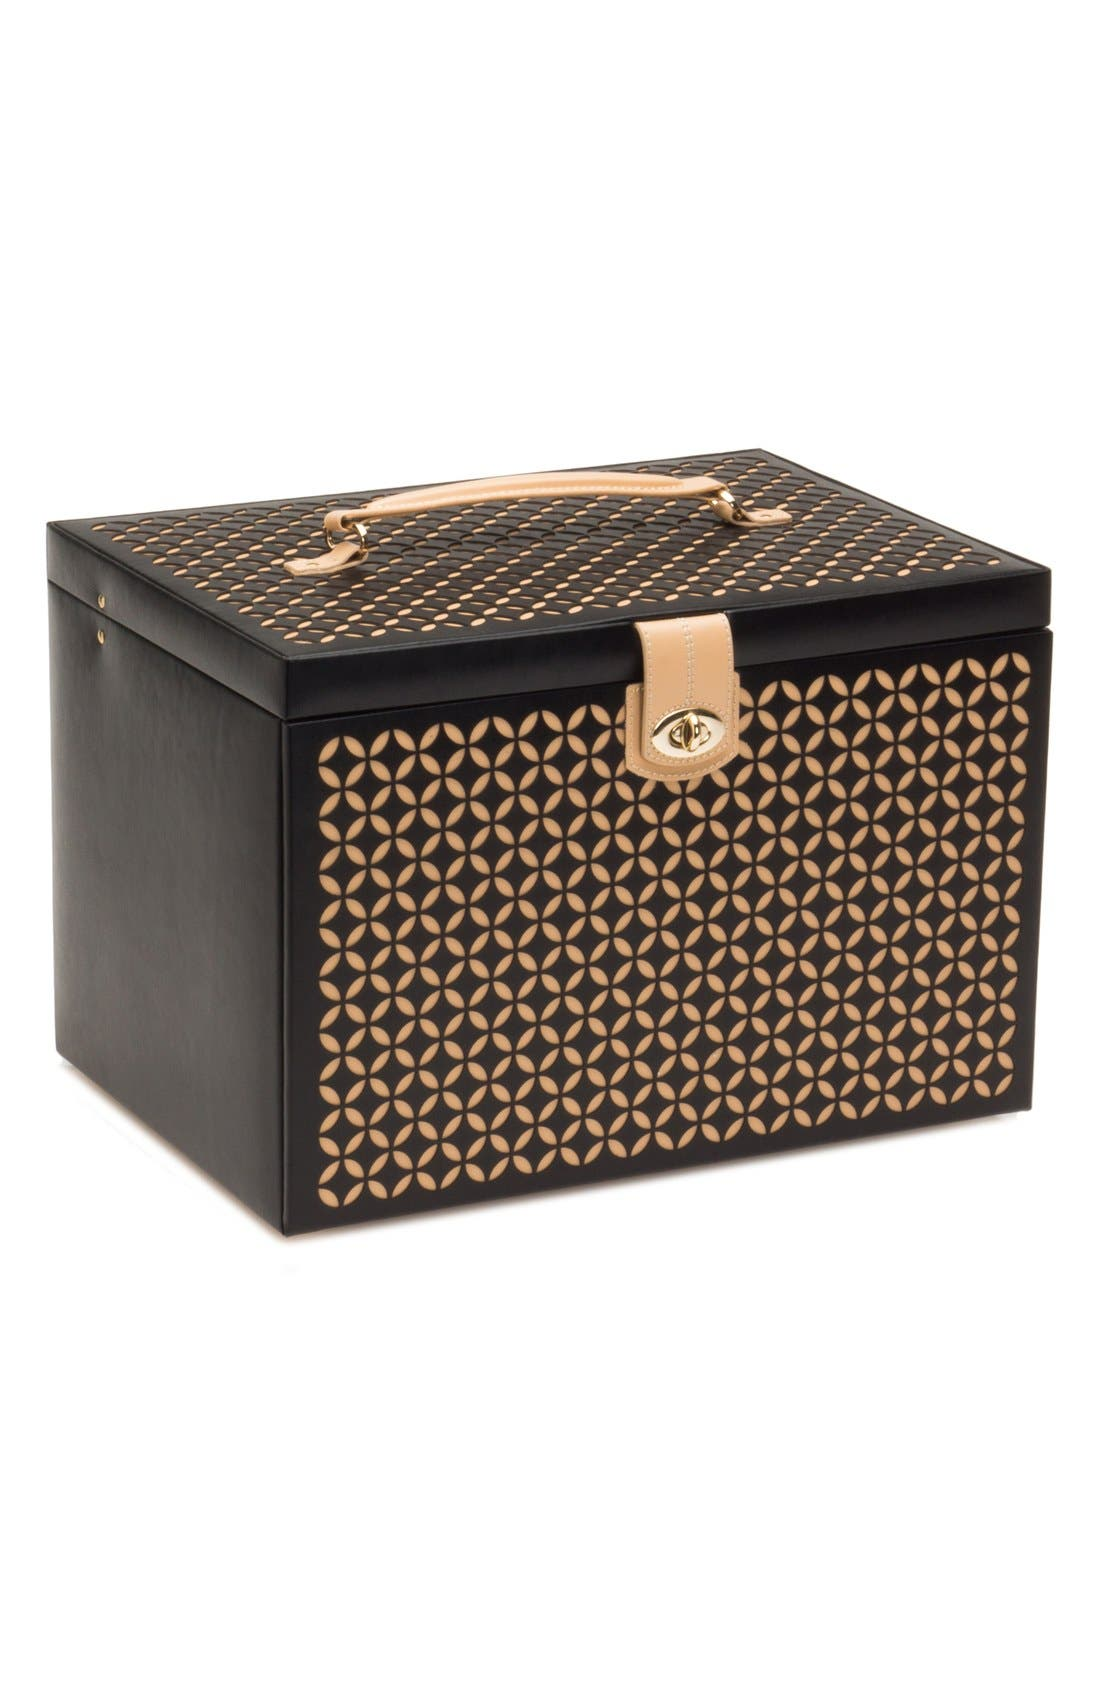 'Chloe' Jewelry Box,                             Alternate thumbnail 6, color,                             Black